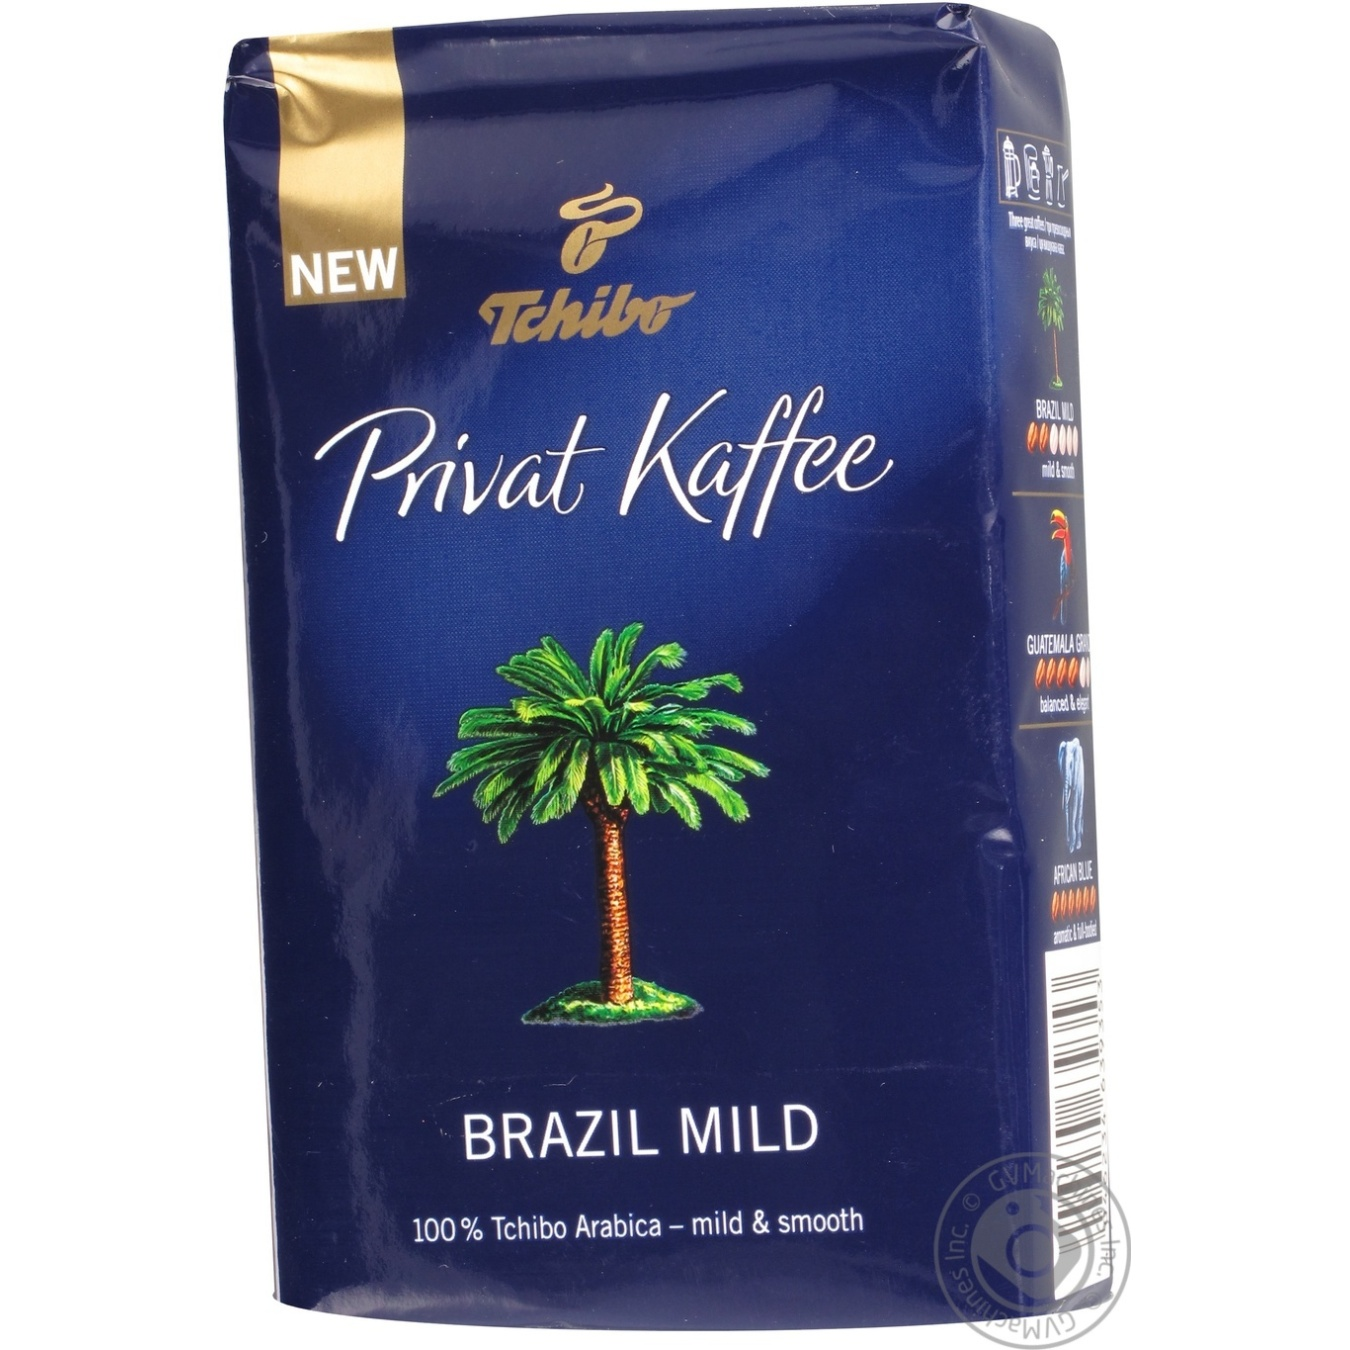 natural ground medium roasted coffee tchibo privat kaffee brazil mild 100 arabica 250g germany. Black Bedroom Furniture Sets. Home Design Ideas